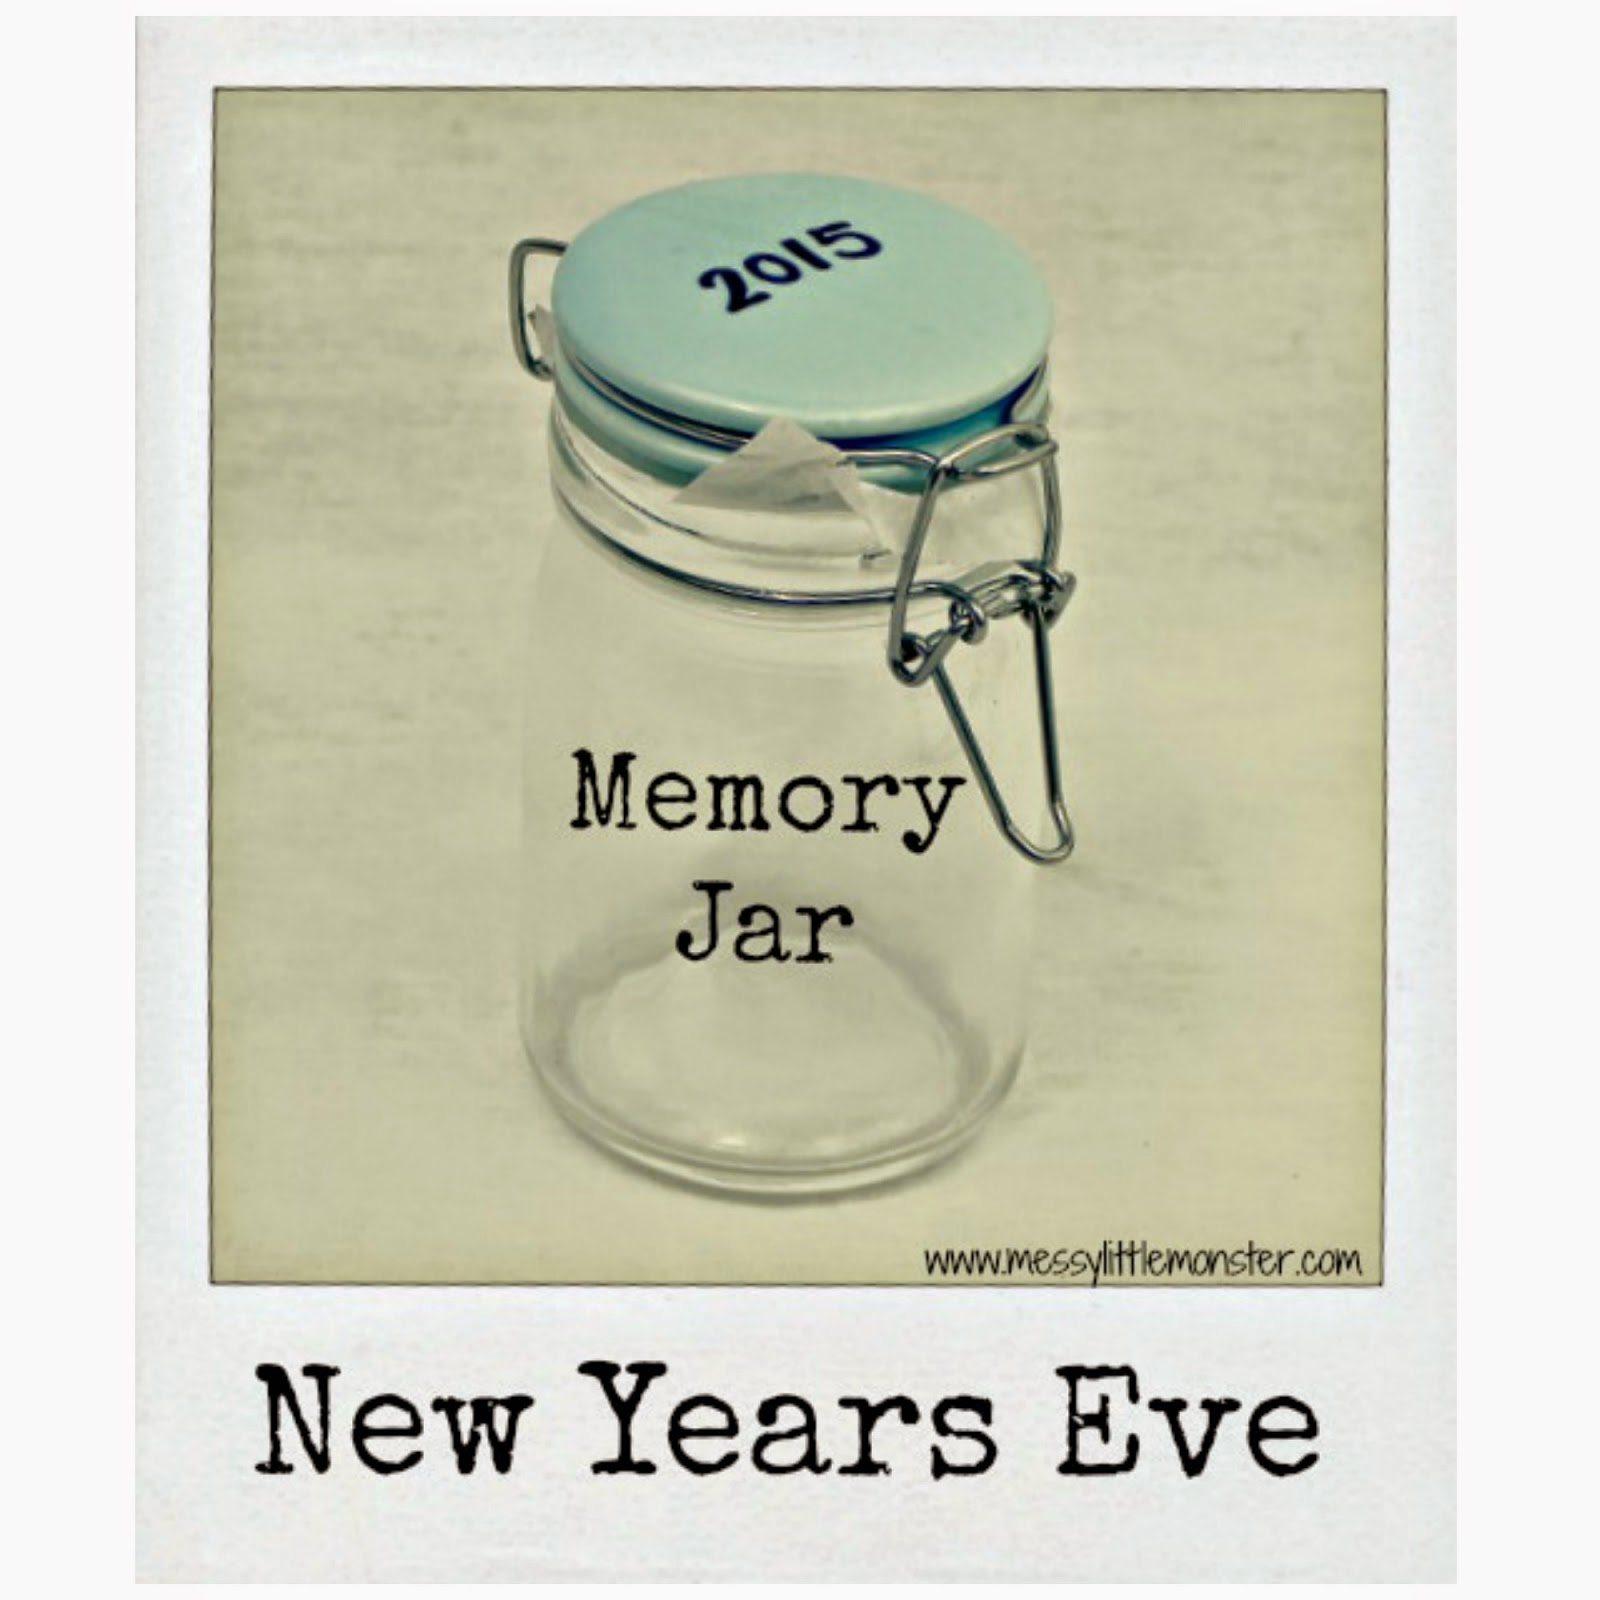 http://www.messylittlemonster.com/2014/12/new-years-eve-memory-jar-time-capsule.html